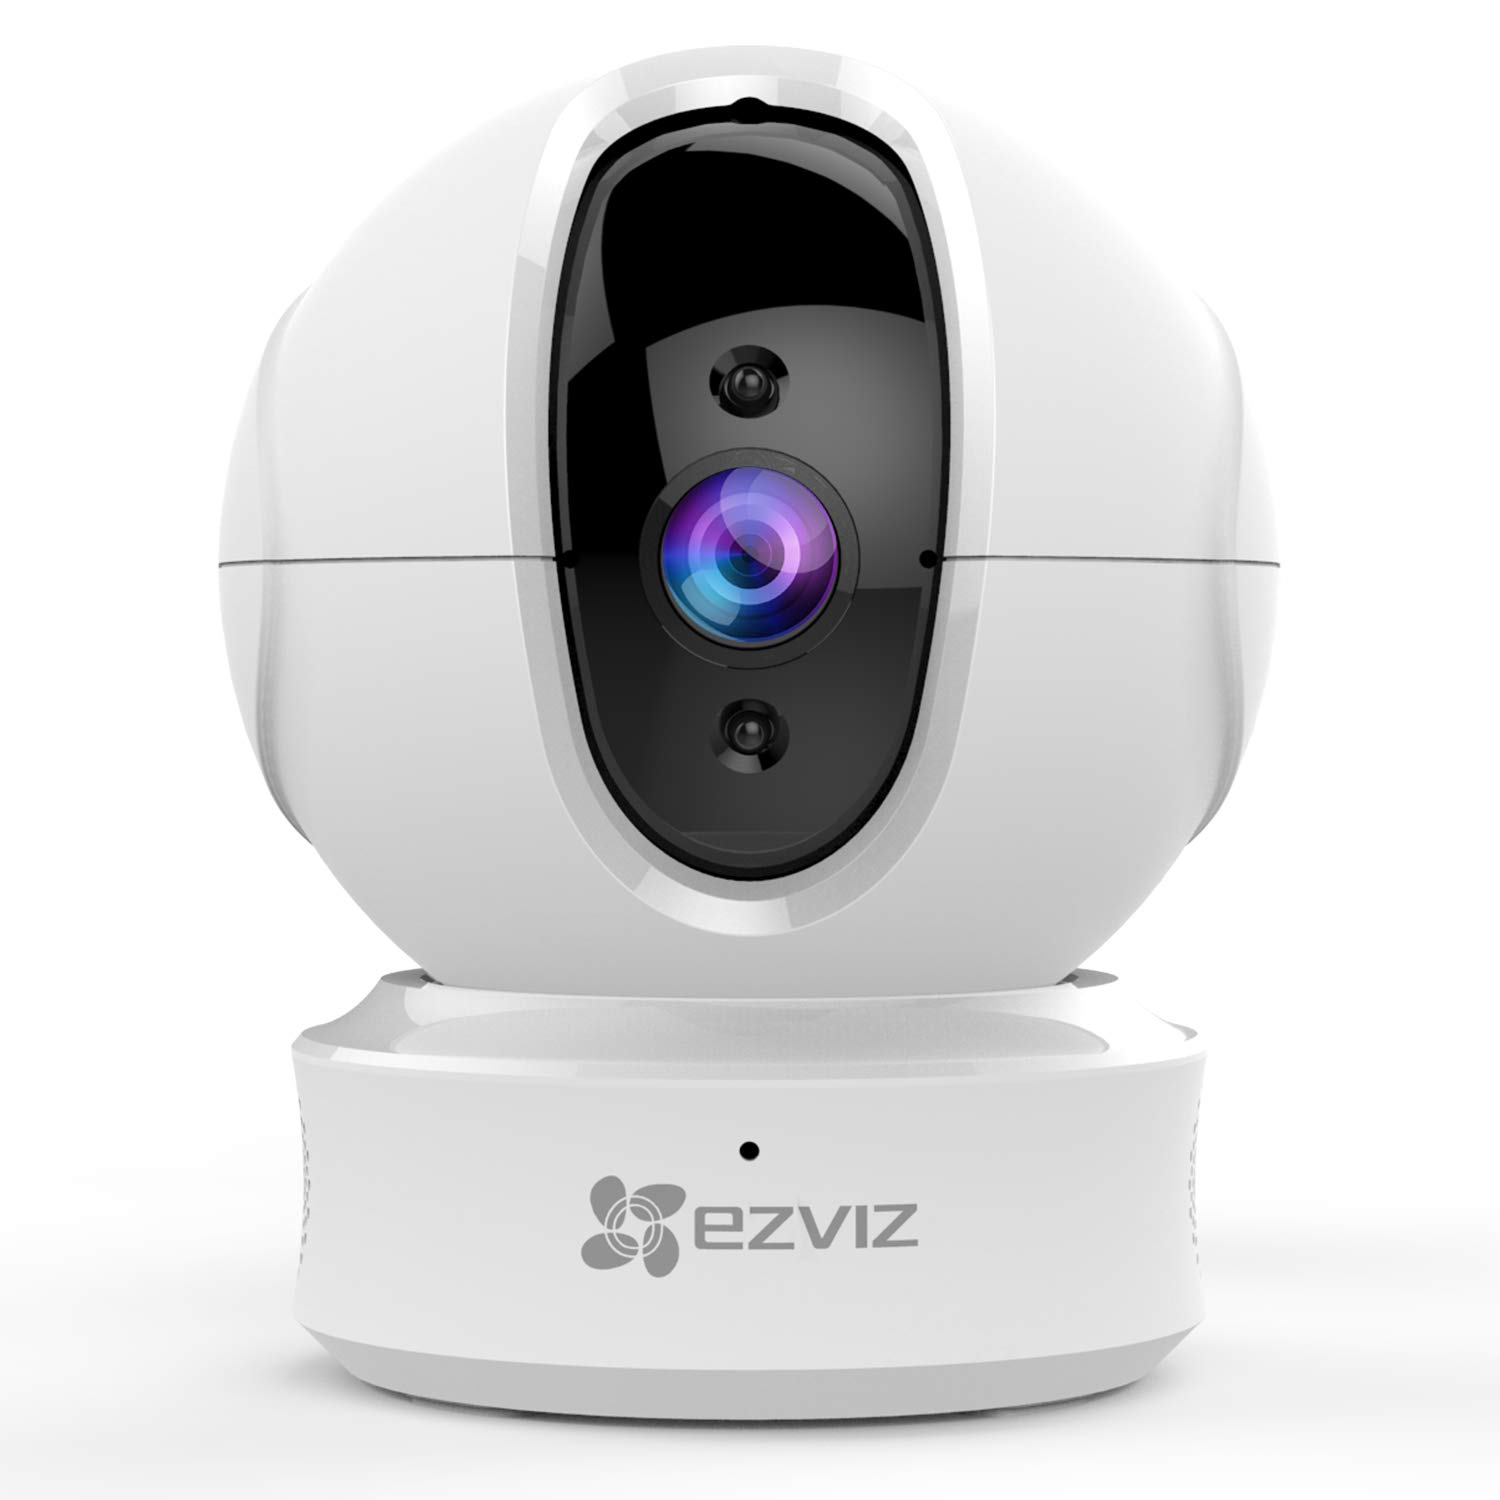 EZVIZ C6CN 1080p Indoor Pan/Tilt WiFi Security Camera 360° Full Room Coverage Auto Motion Tracking Full Duplex Two-Way Audio Clear 30ft Night Vision Supports MicroSD Card up to 256GB 2.4GHz WiFi